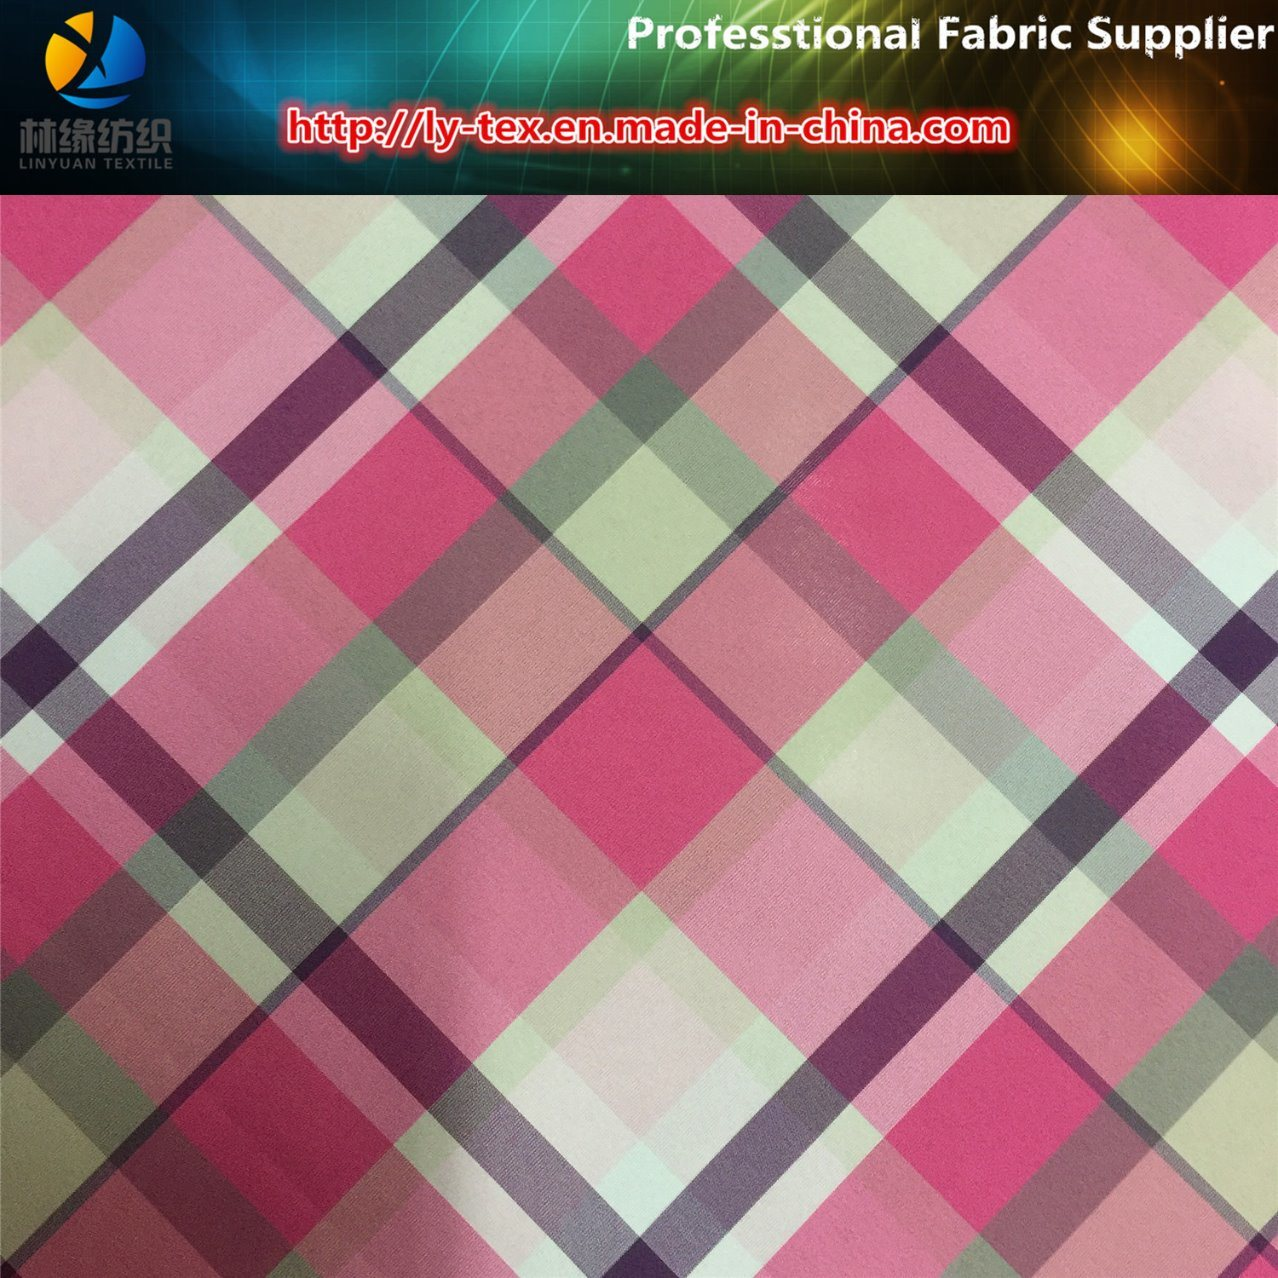 Six Color in Weft! Pink Polyester Yarn Dyed Check Woven Textile Fabric for Dress